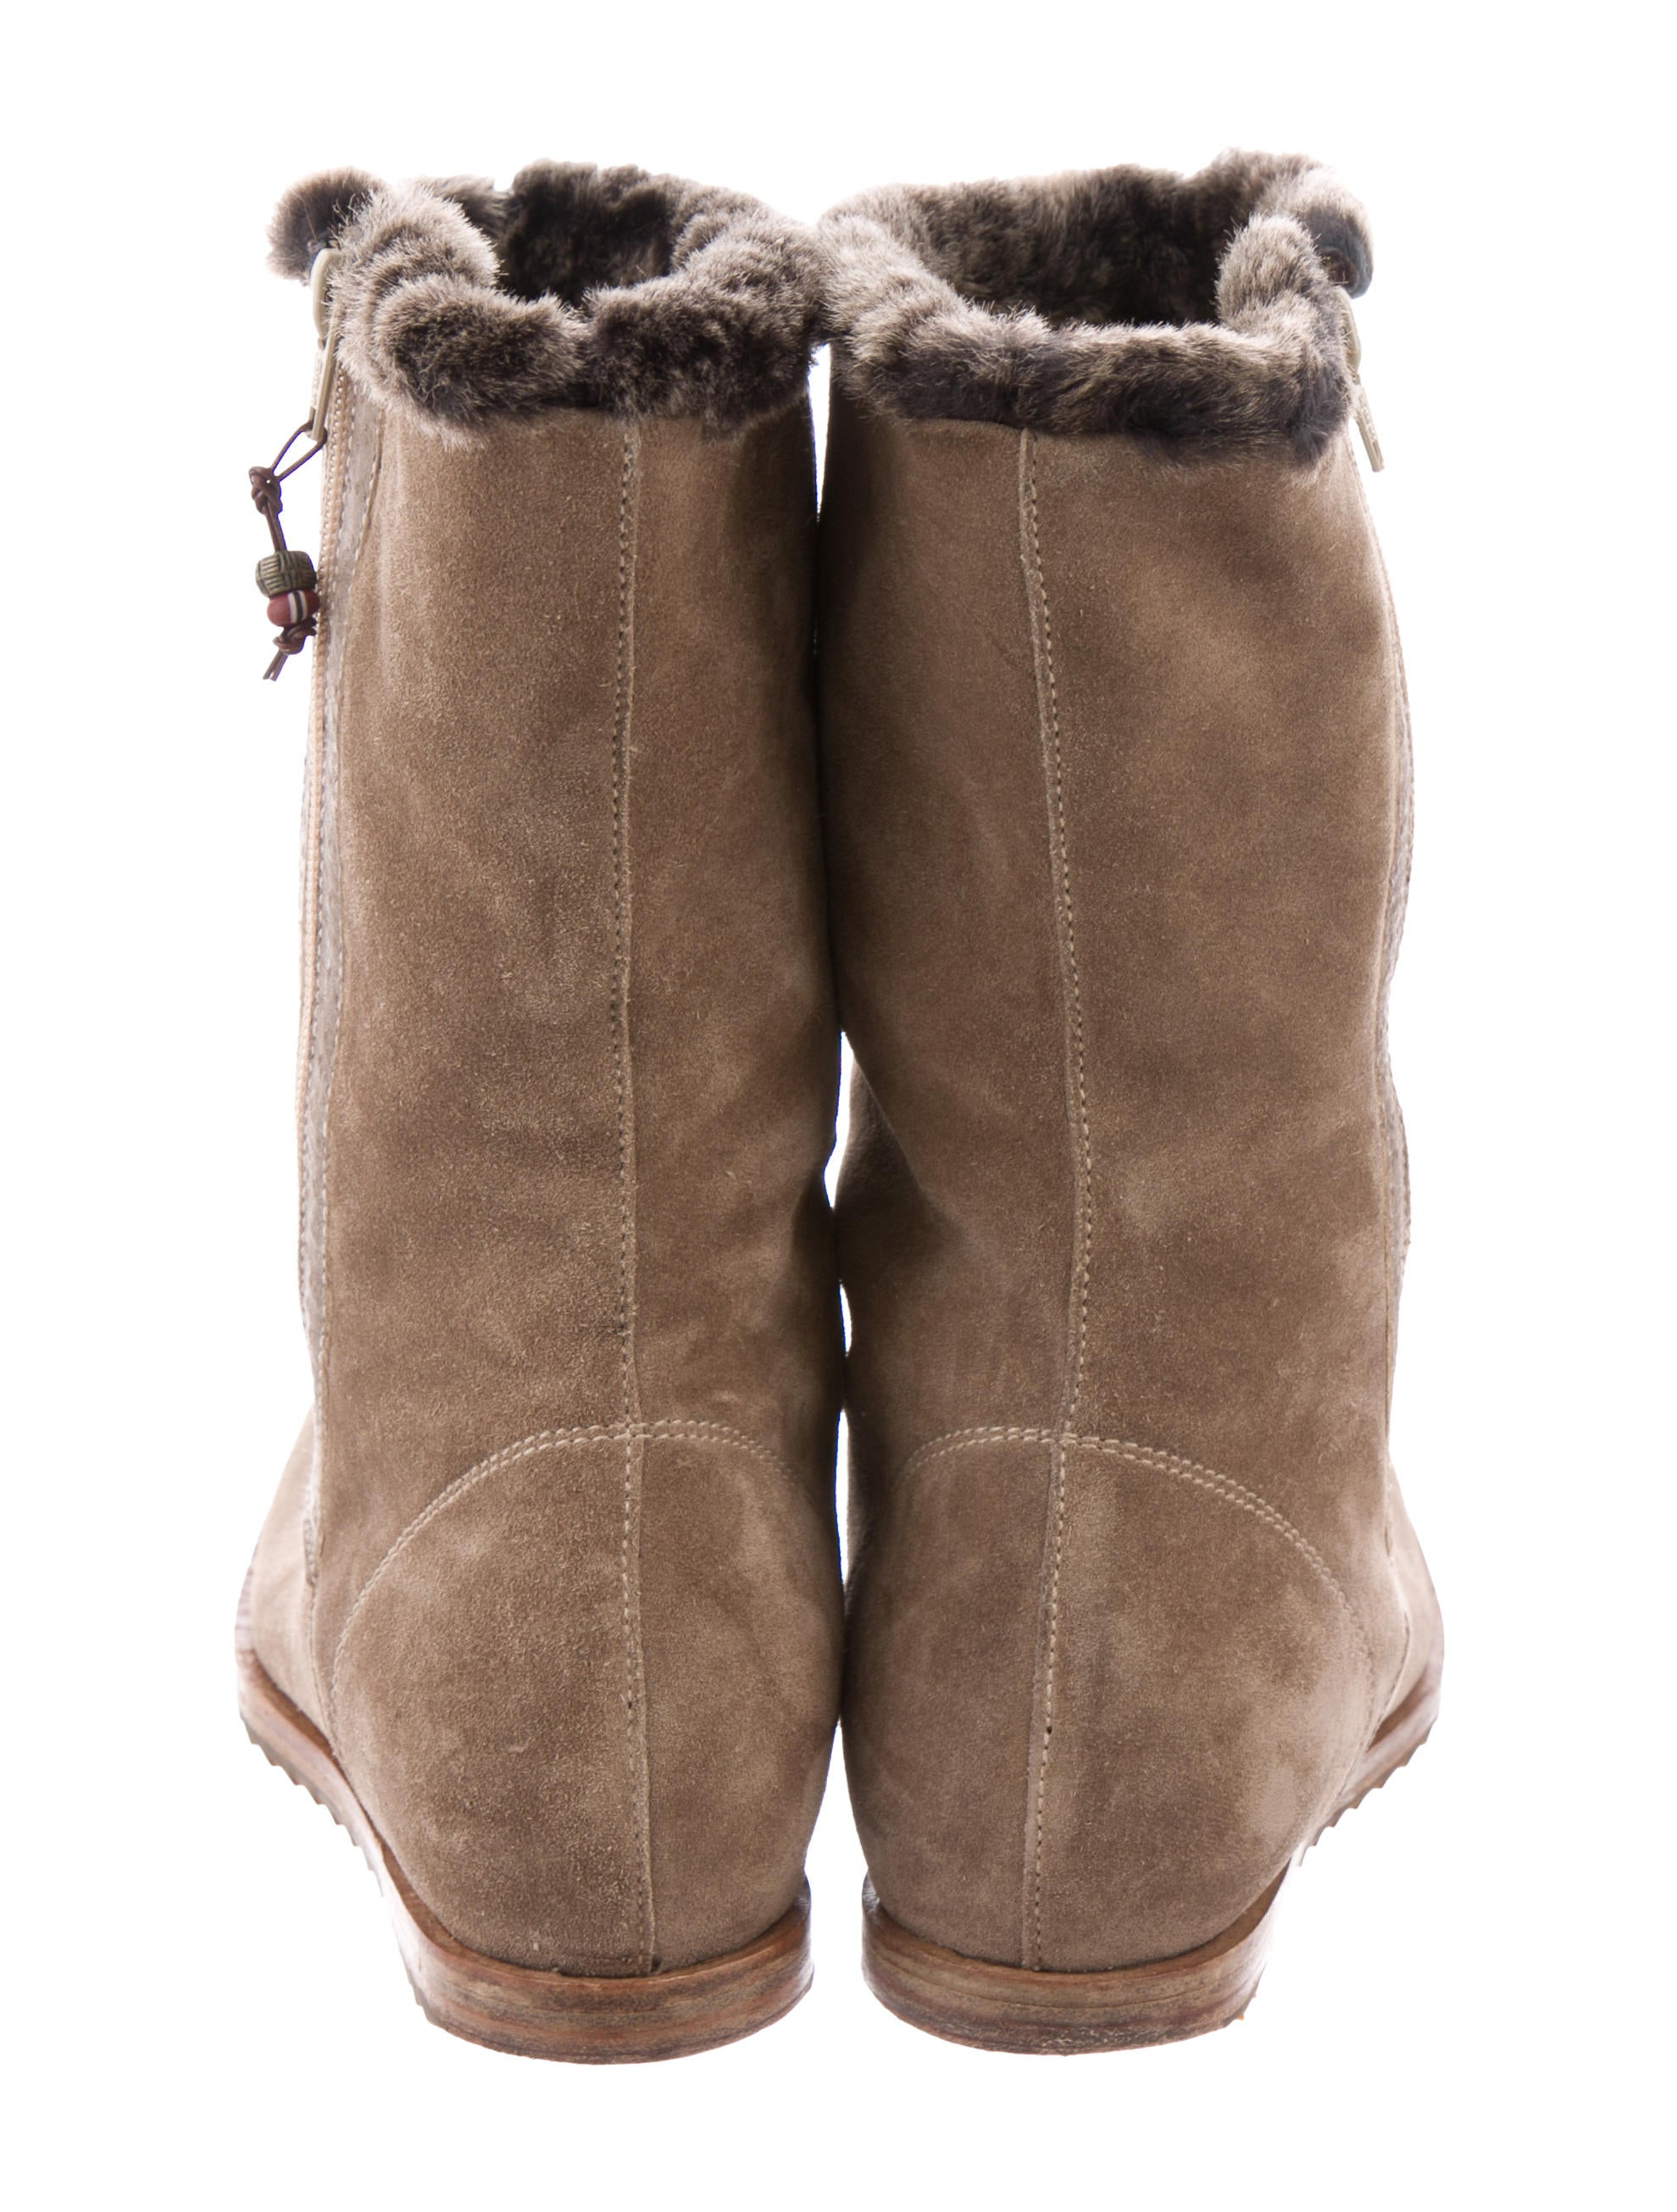 Henry Beguelin Faux Fur Suede Boots nicekicks sale online discount find great 100% authentic online free shipping with credit card free shipping pictures nWBOO